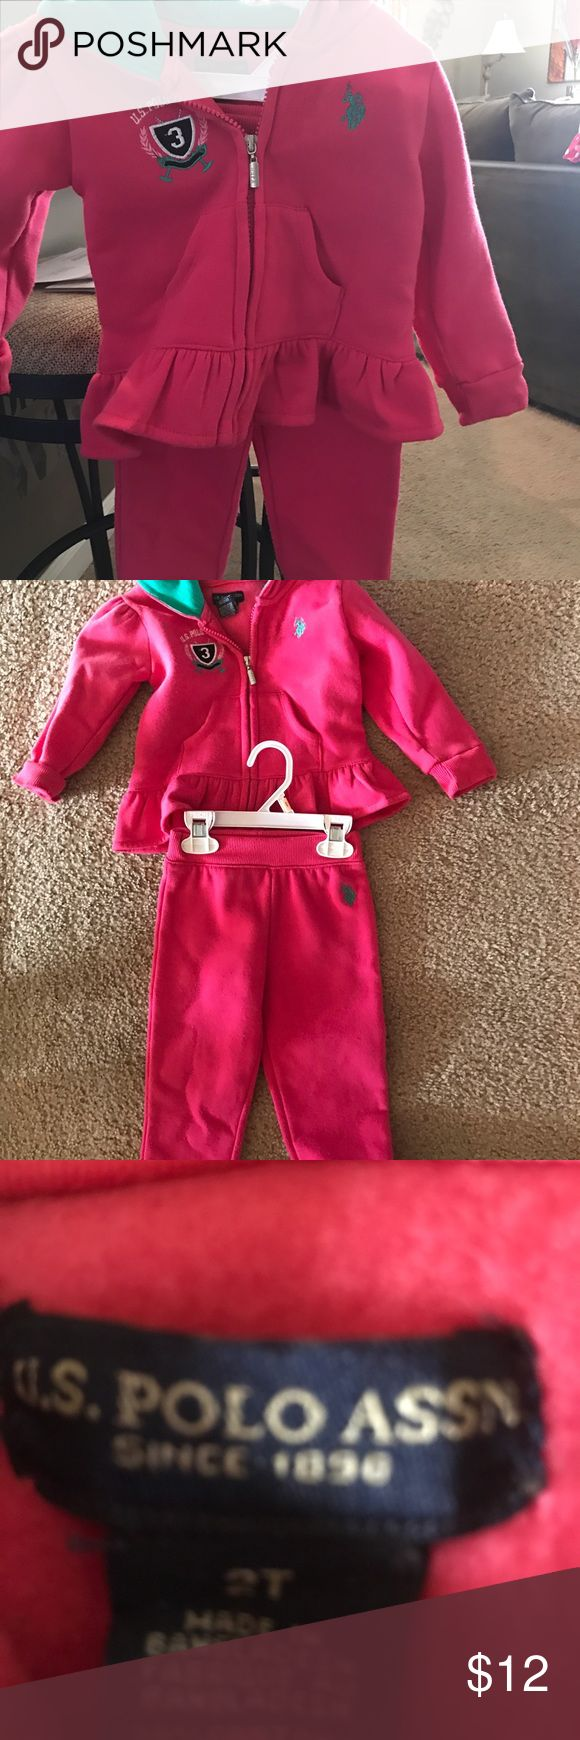 US Polo Association sweatsuit. 2T US Polo association sweatsuit.  Excellent condition. Comes from a smoke free home. US Polo association  Matching Sets